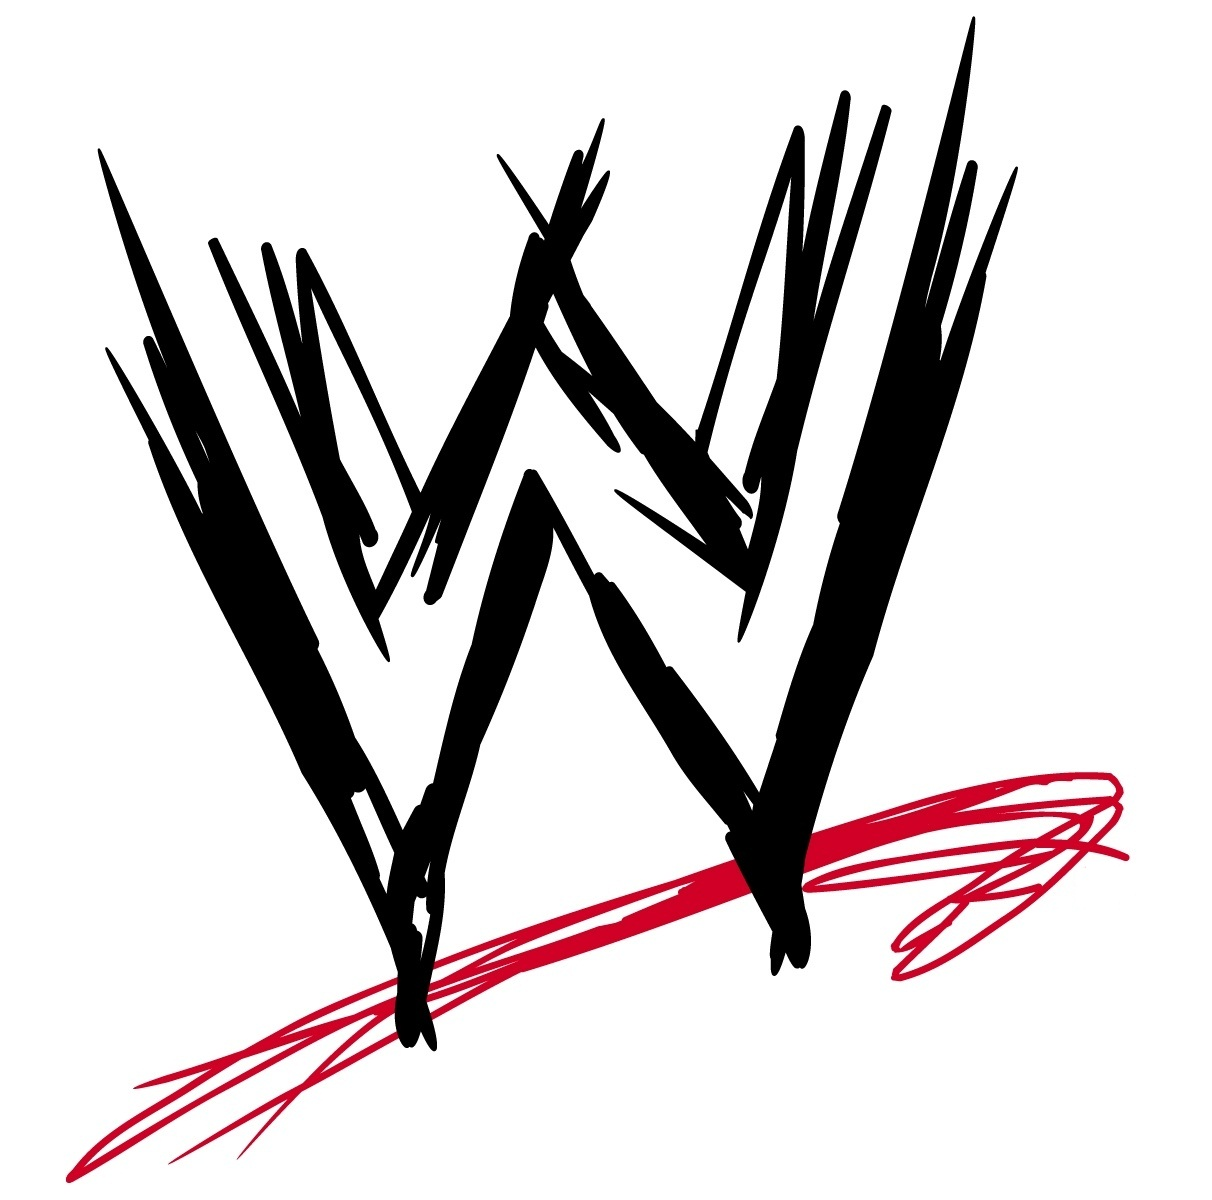 Clipart of the WWE Logo free image.